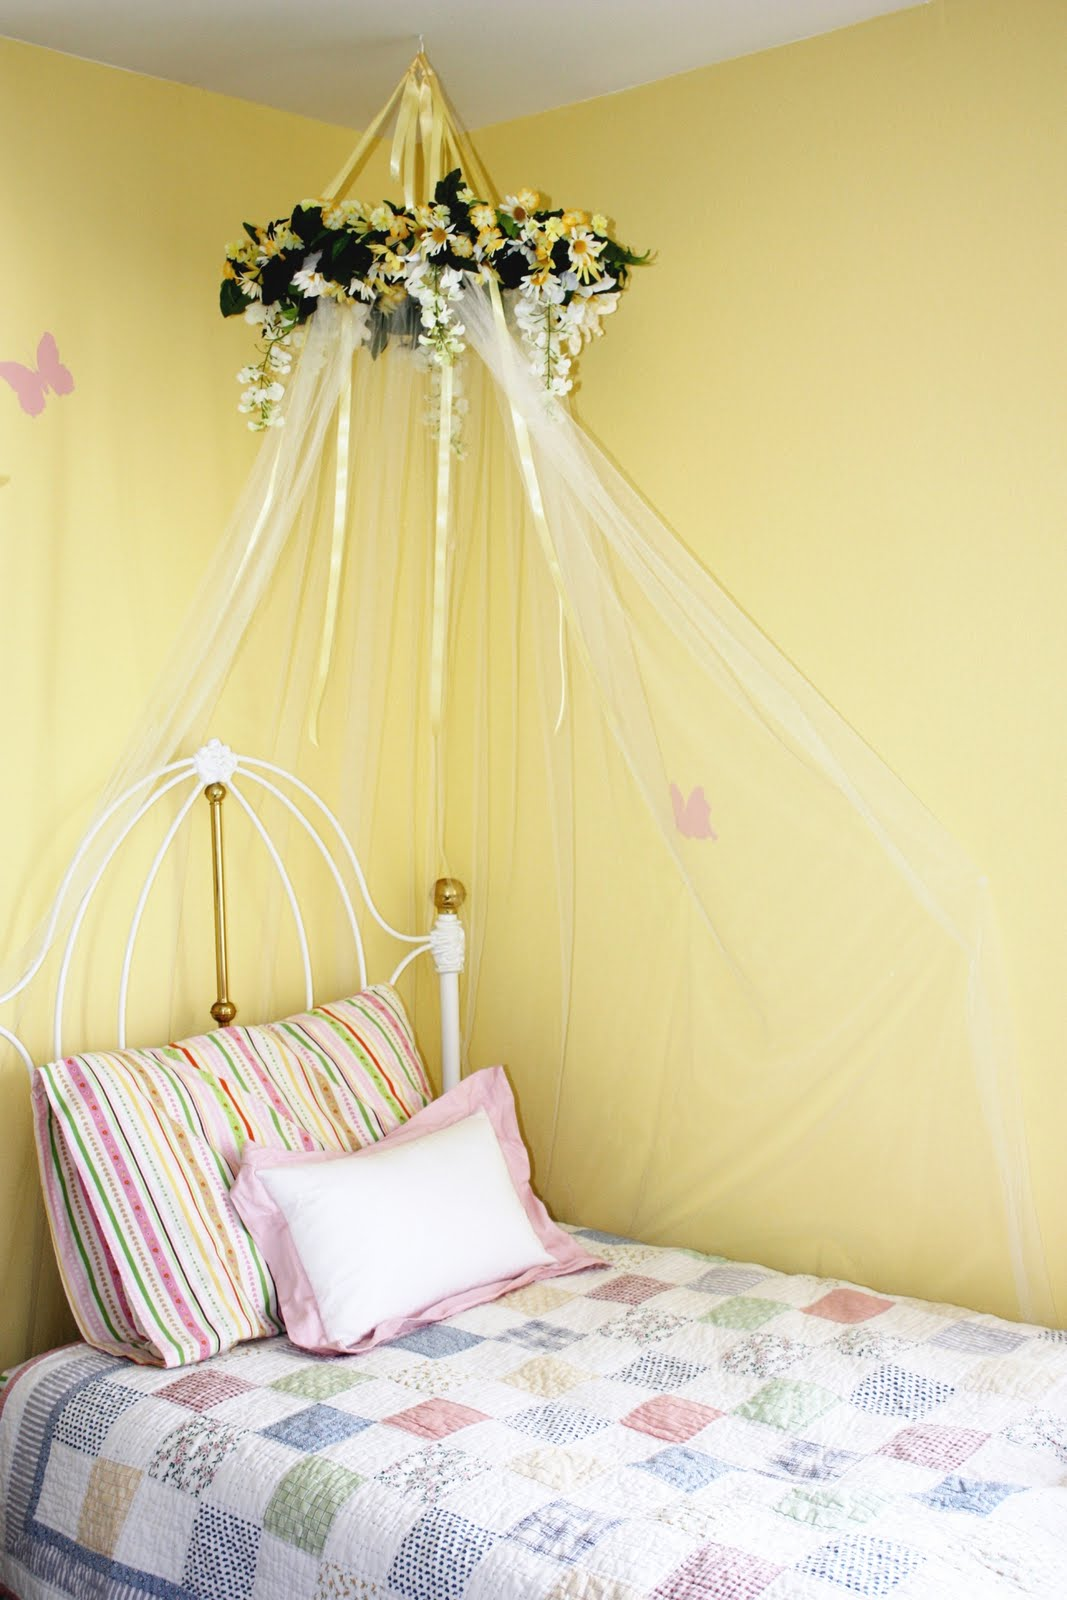 Diy Bed Canopy Everyday Art Diy Bed Canopy For Little Girls Room